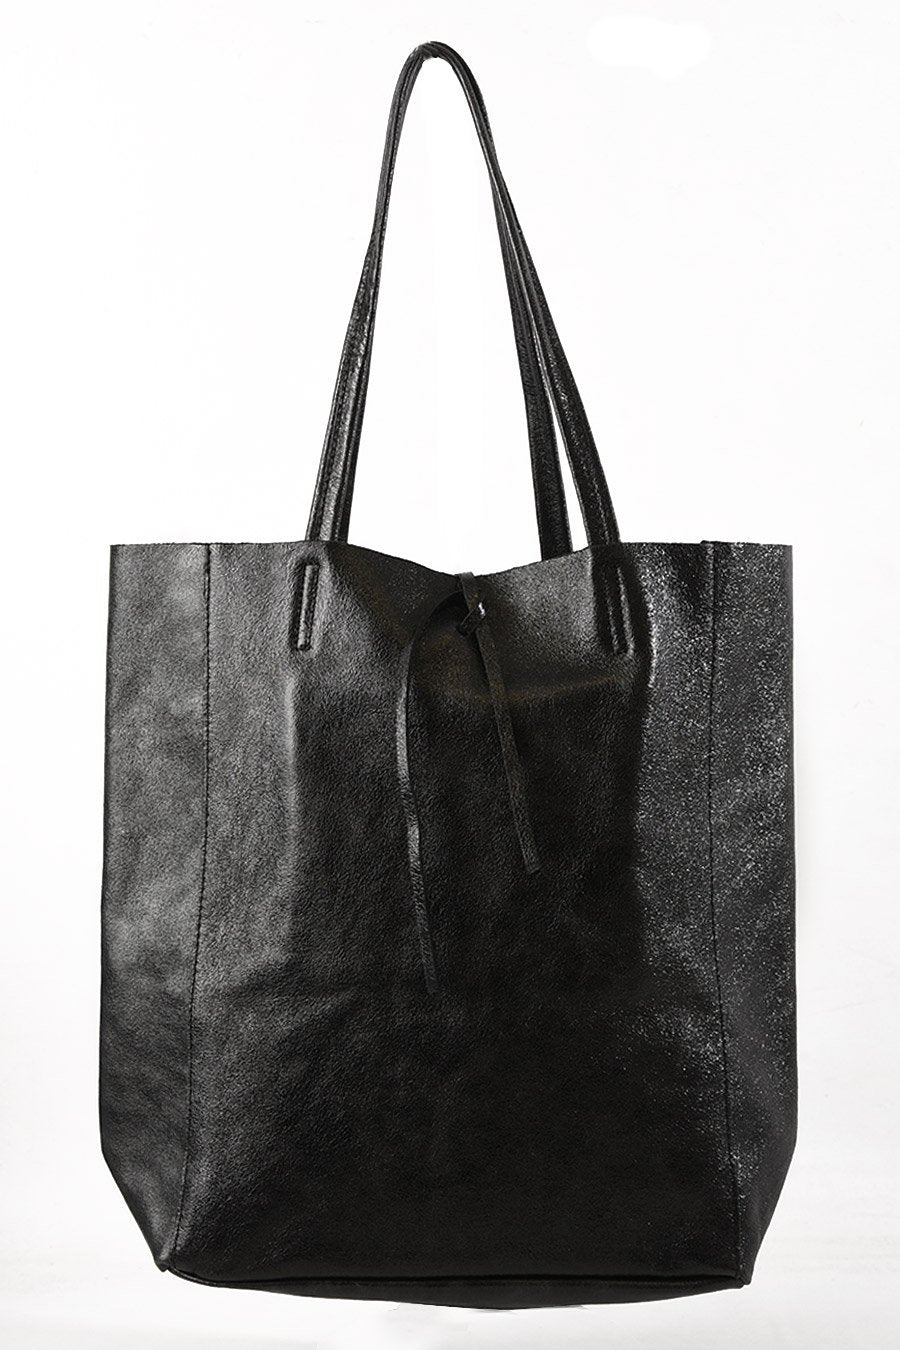 Black metallic leather tote bag